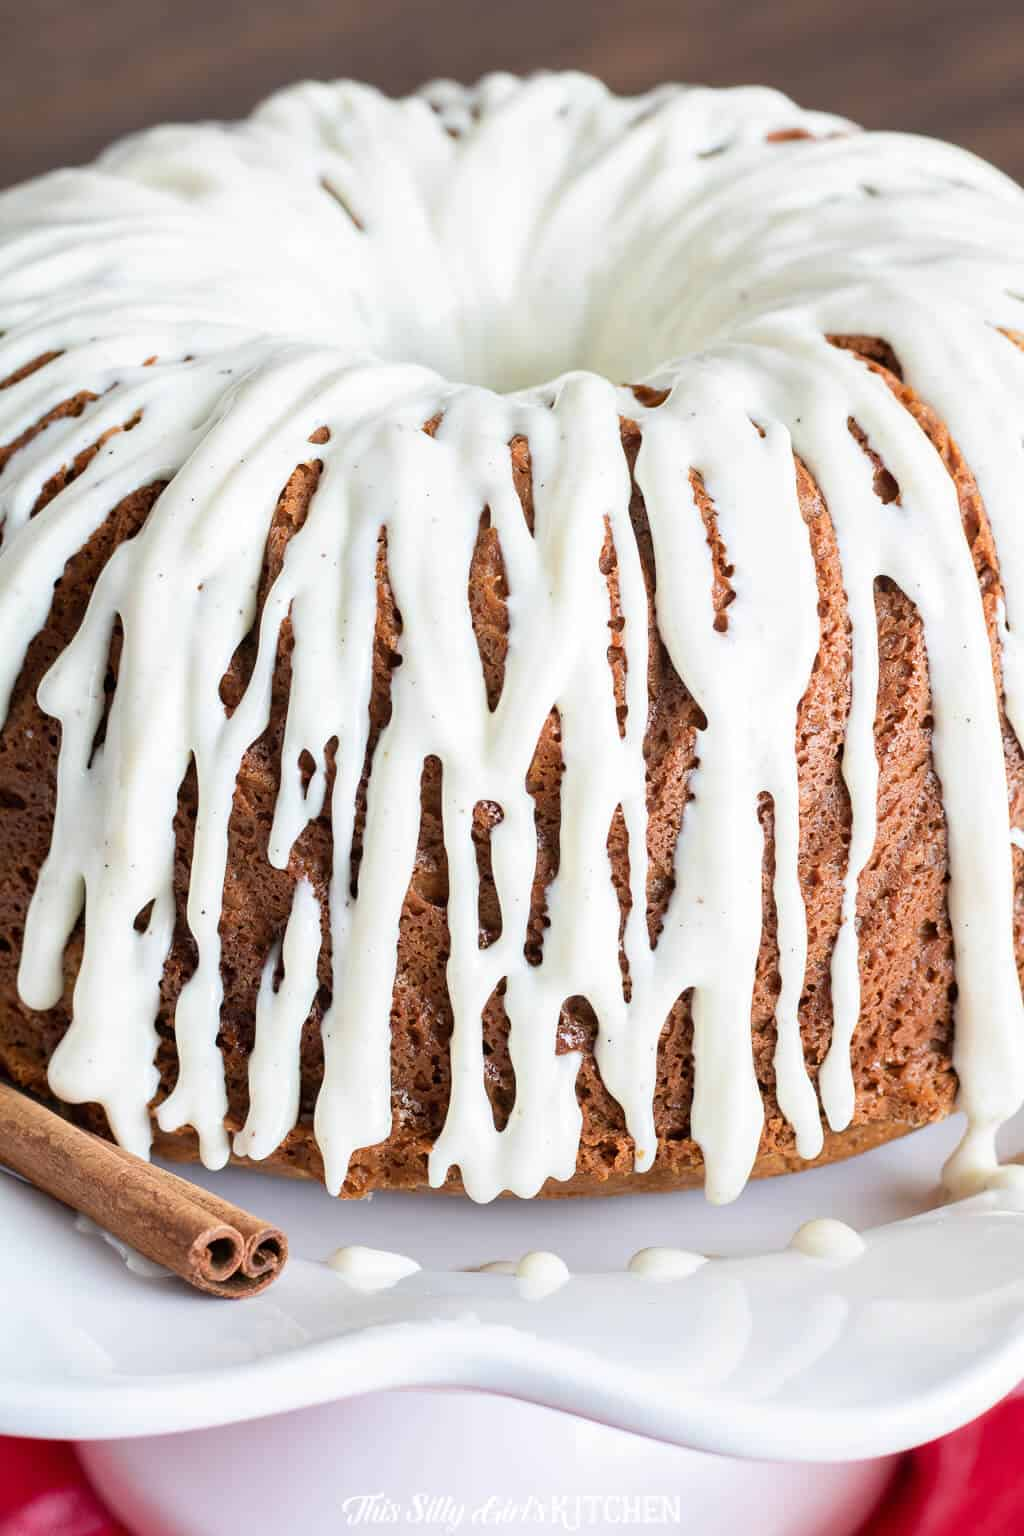 This sour cream coffee cake can be enjoyed at any time during the day, moist, cinnamony, and dripping with a luscious cream cheese glaze! #recipe from thissillygirlskitchen.com #coffeecake #sourcreamcoffeecake #cinnamon #breakfast